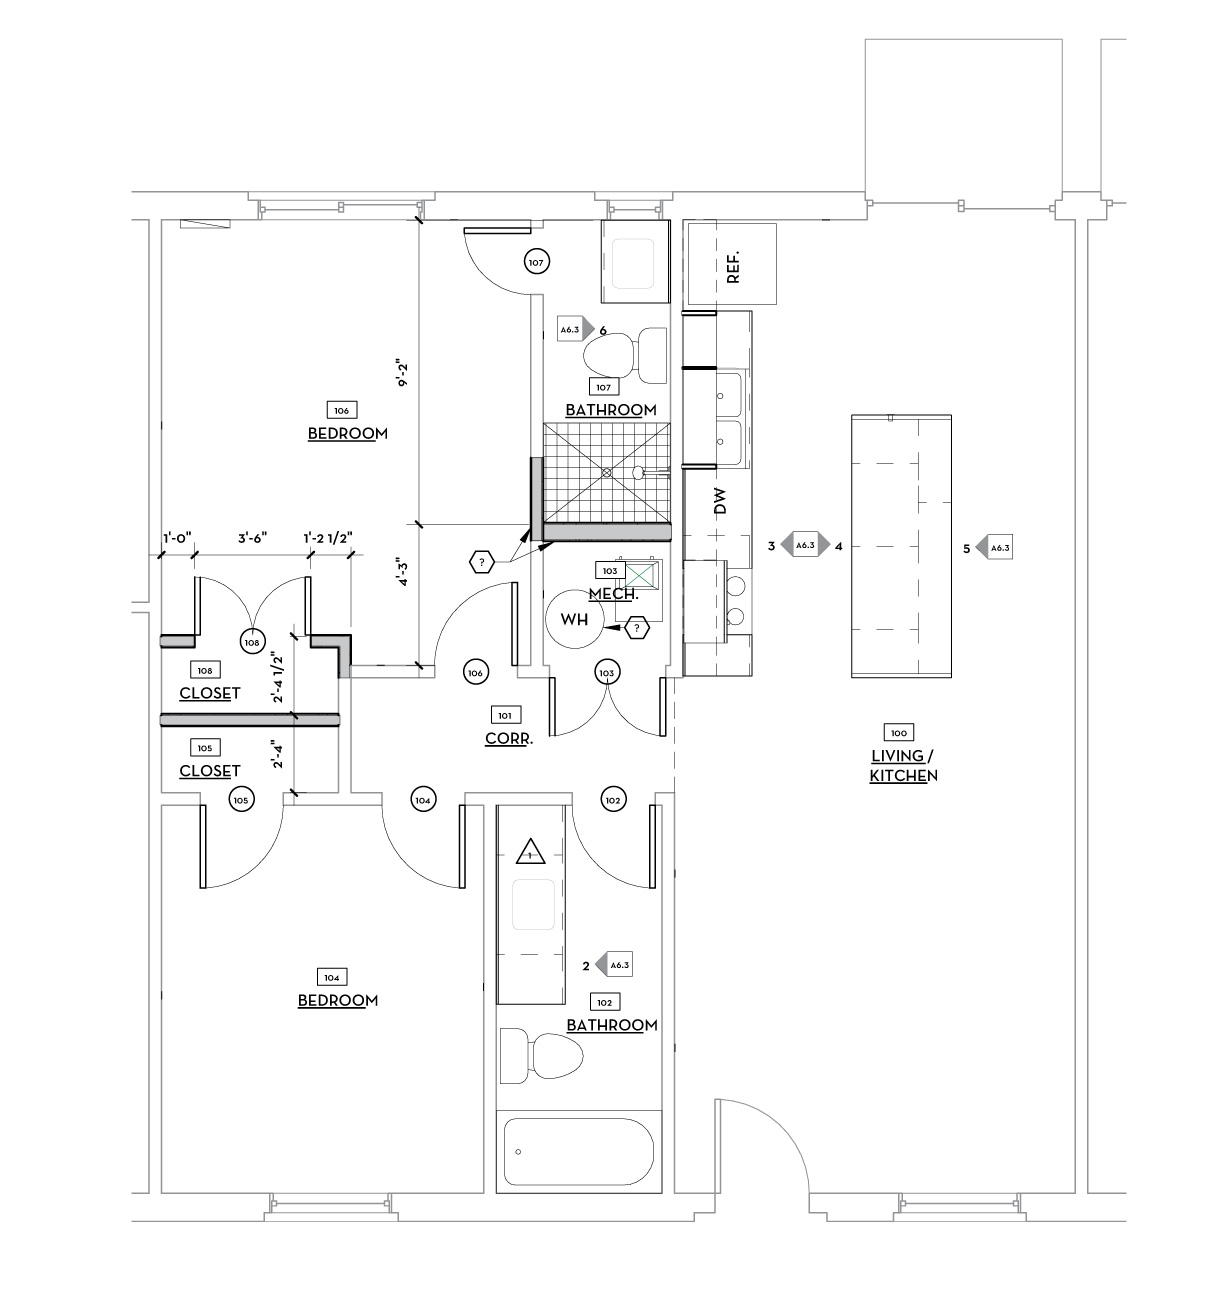 FIRST FLOOR DIMENSION PLAN - TYP. 2 BED UNIT